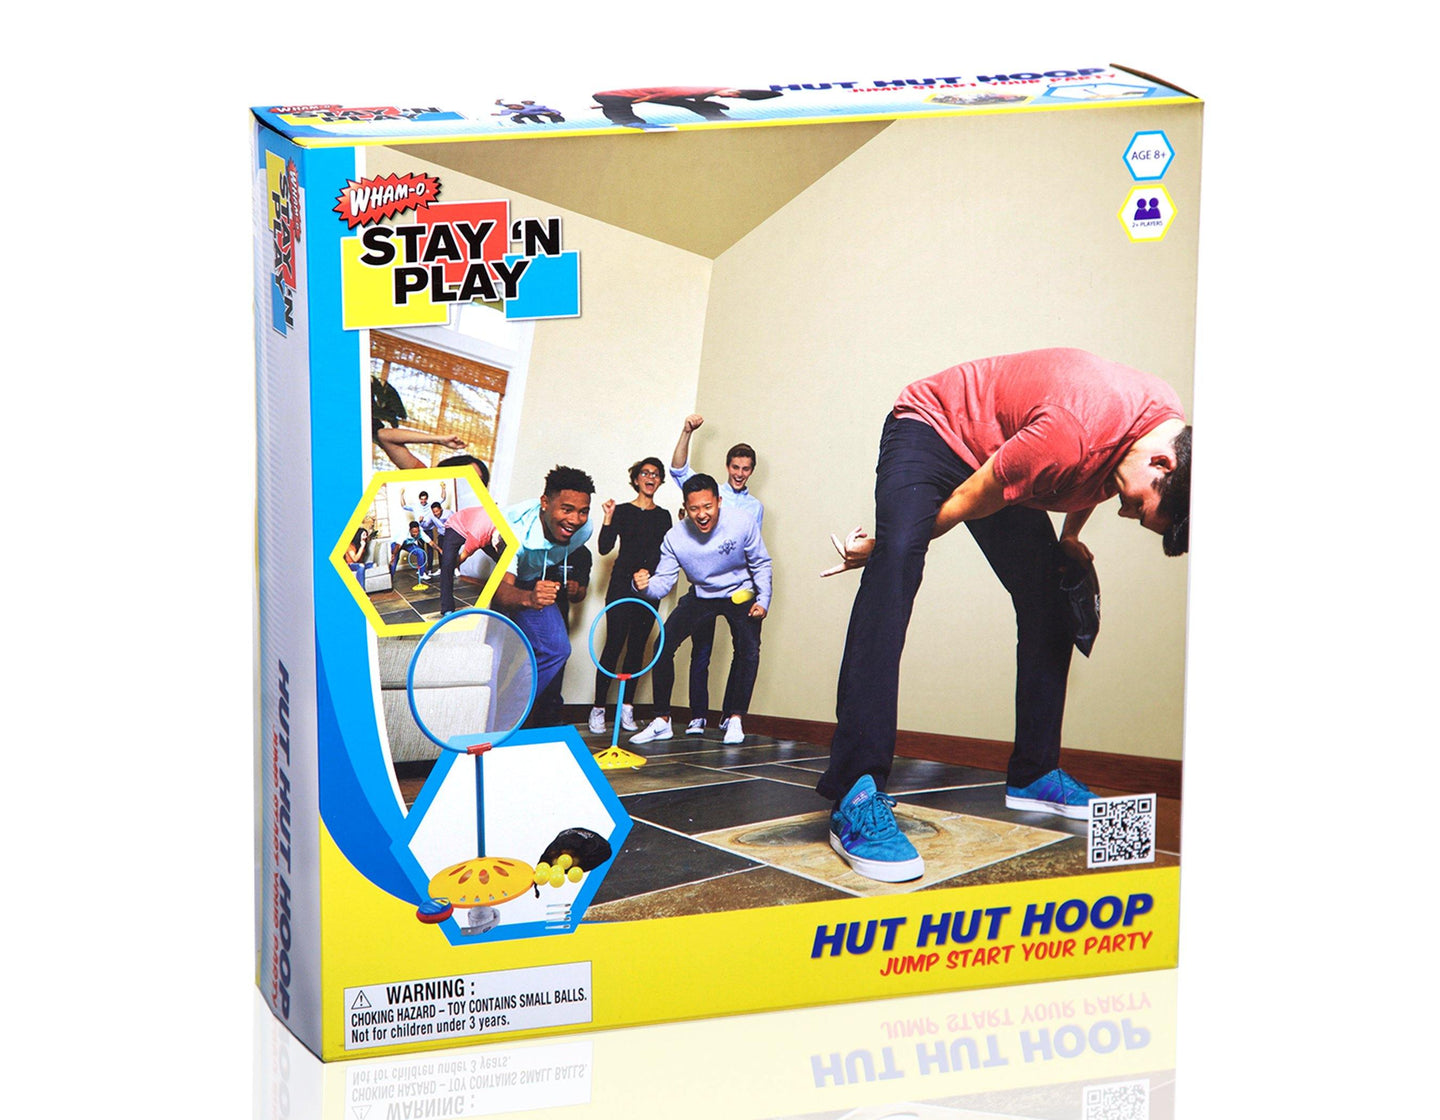 Hut Hut Hoop - Stay 'N Play